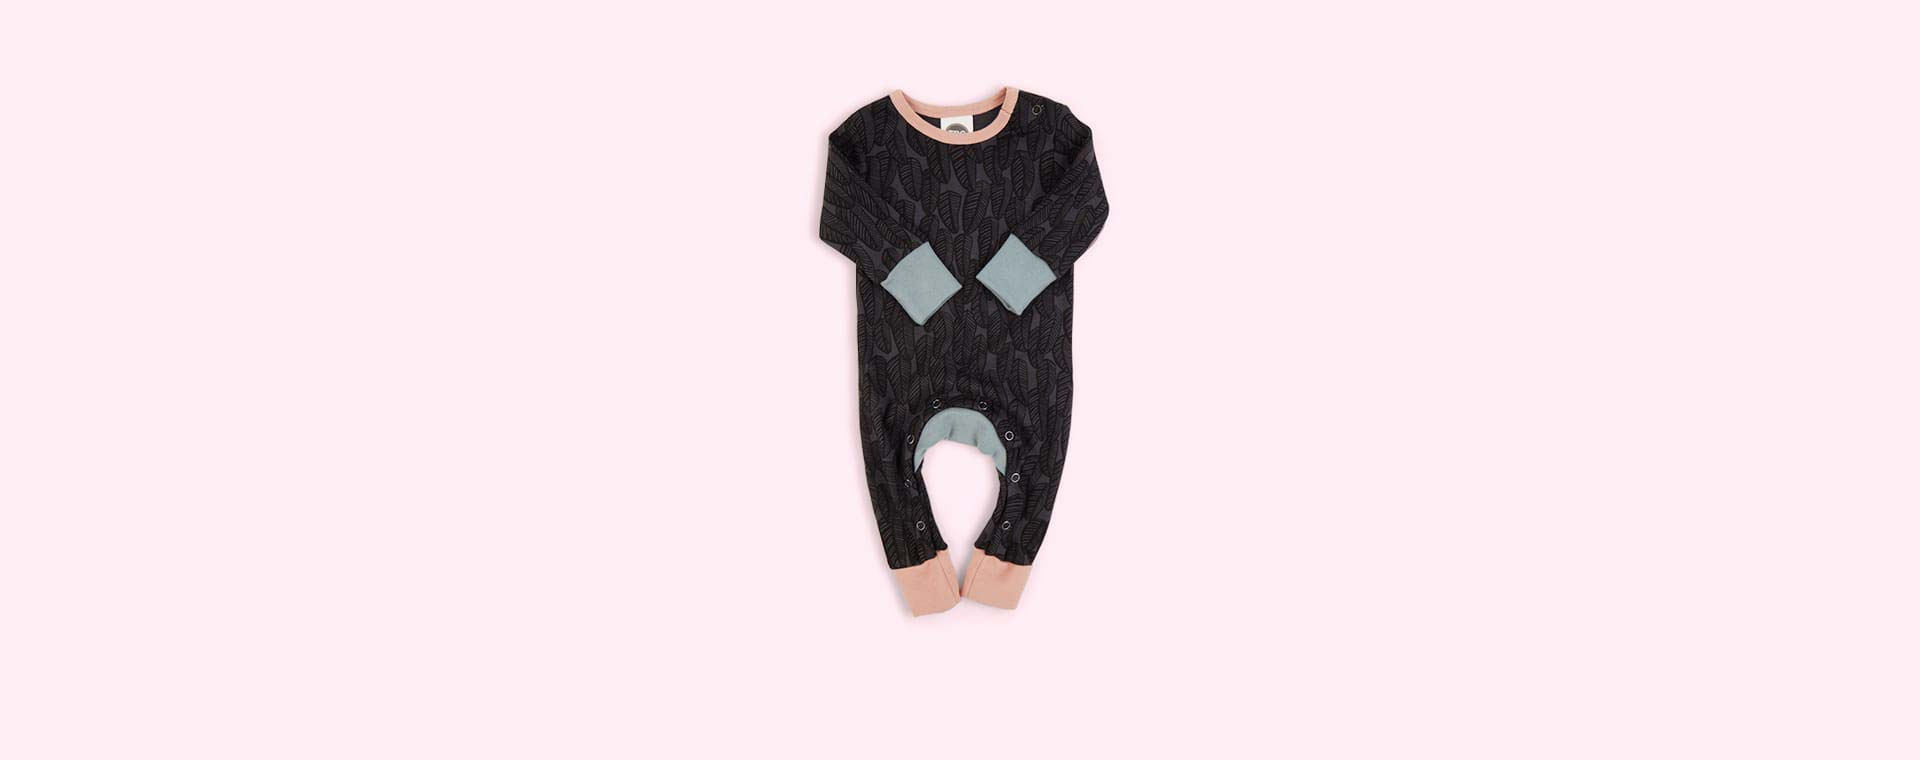 Feathers Midnight The Bright Company Monty Sleepsuit